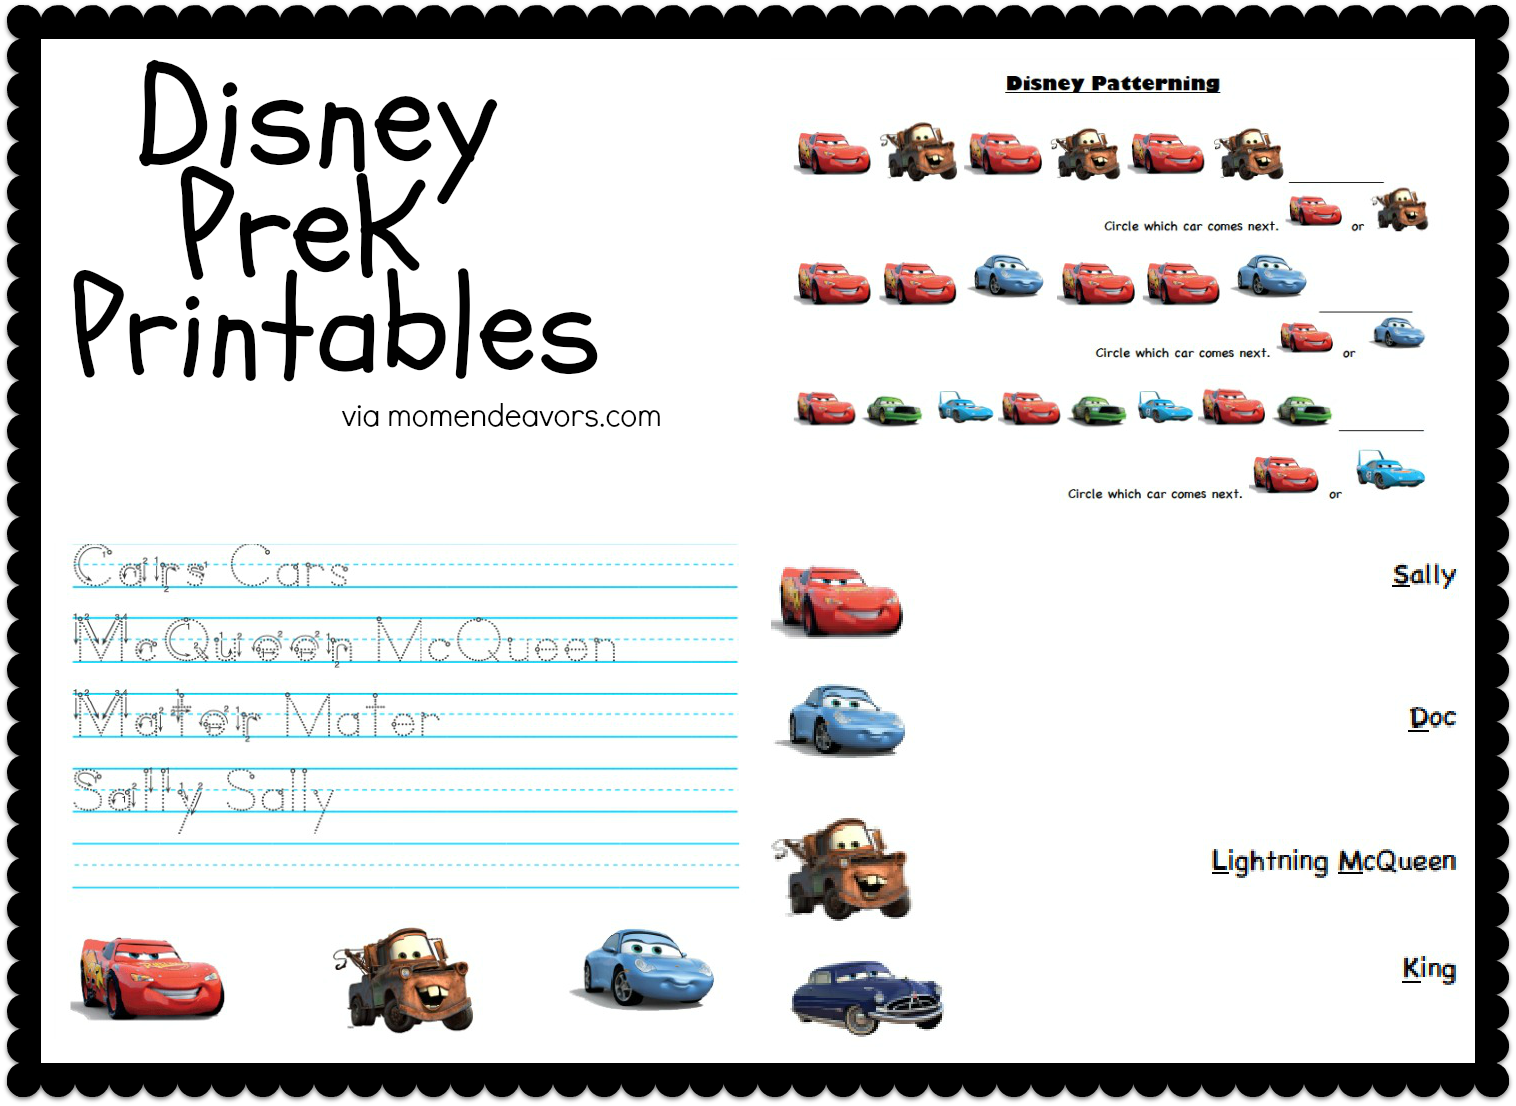 Disney Pixar Cars Prek Printable Activity Sheets Disney Free Printables